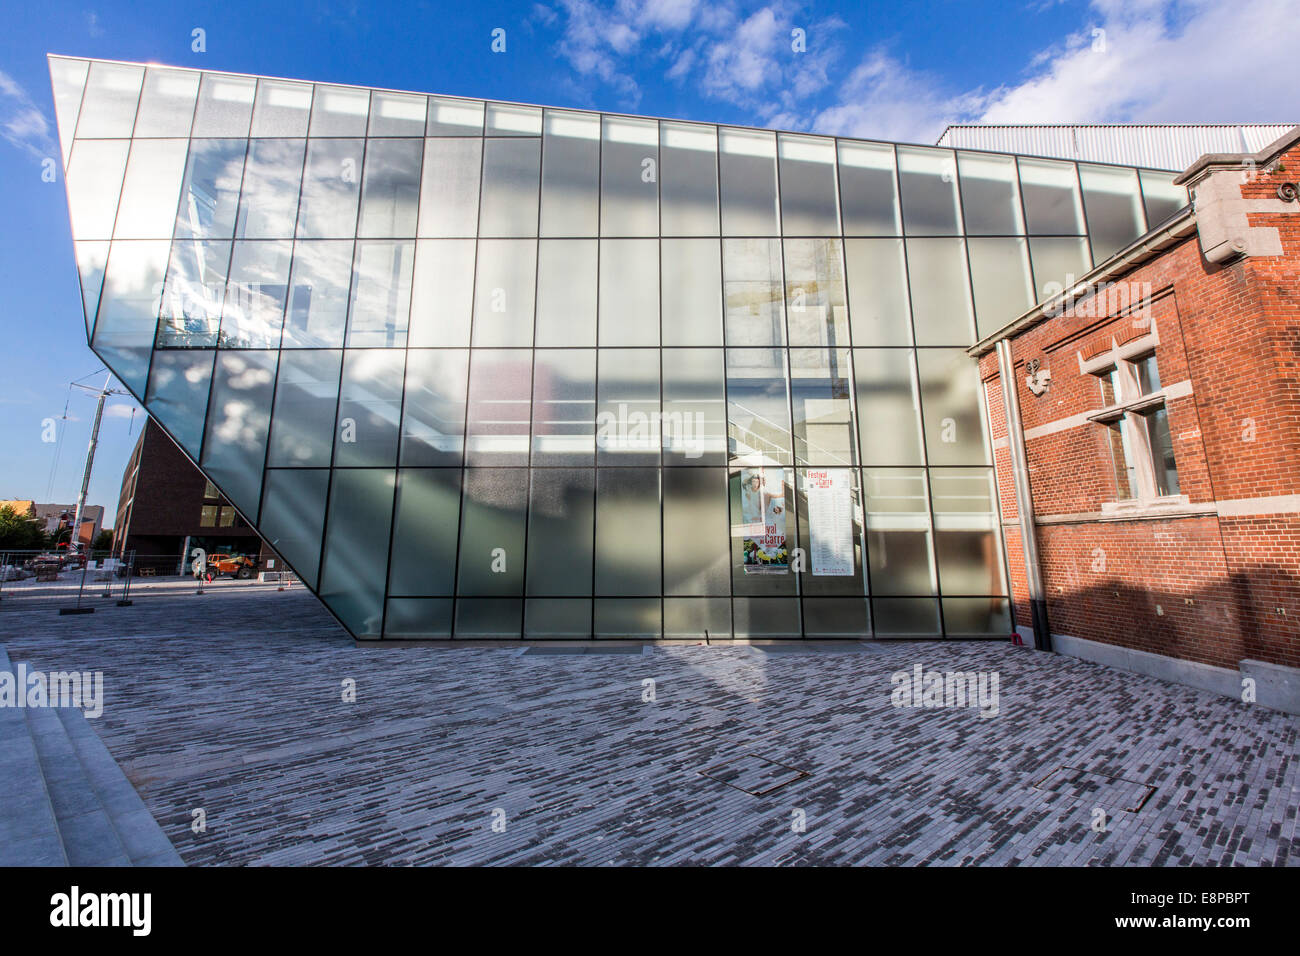 """Theatre Le Manege"" theater in new and old buildings, central point for the Capital of Culture 2015, Stock Photo"